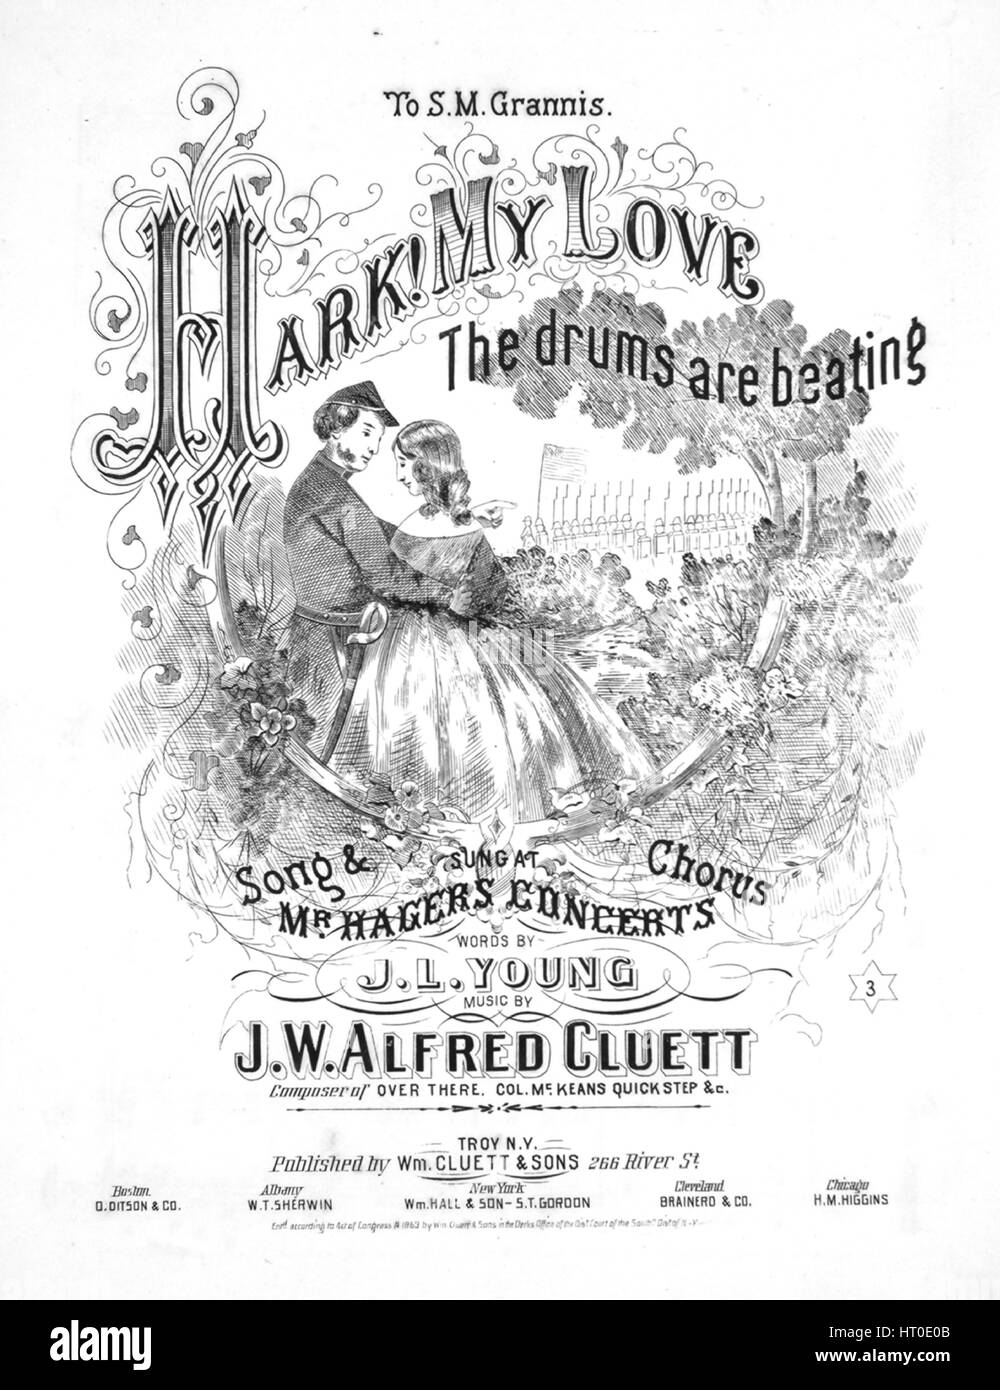 Sheet music cover image of the song 'Hark! My Love, The